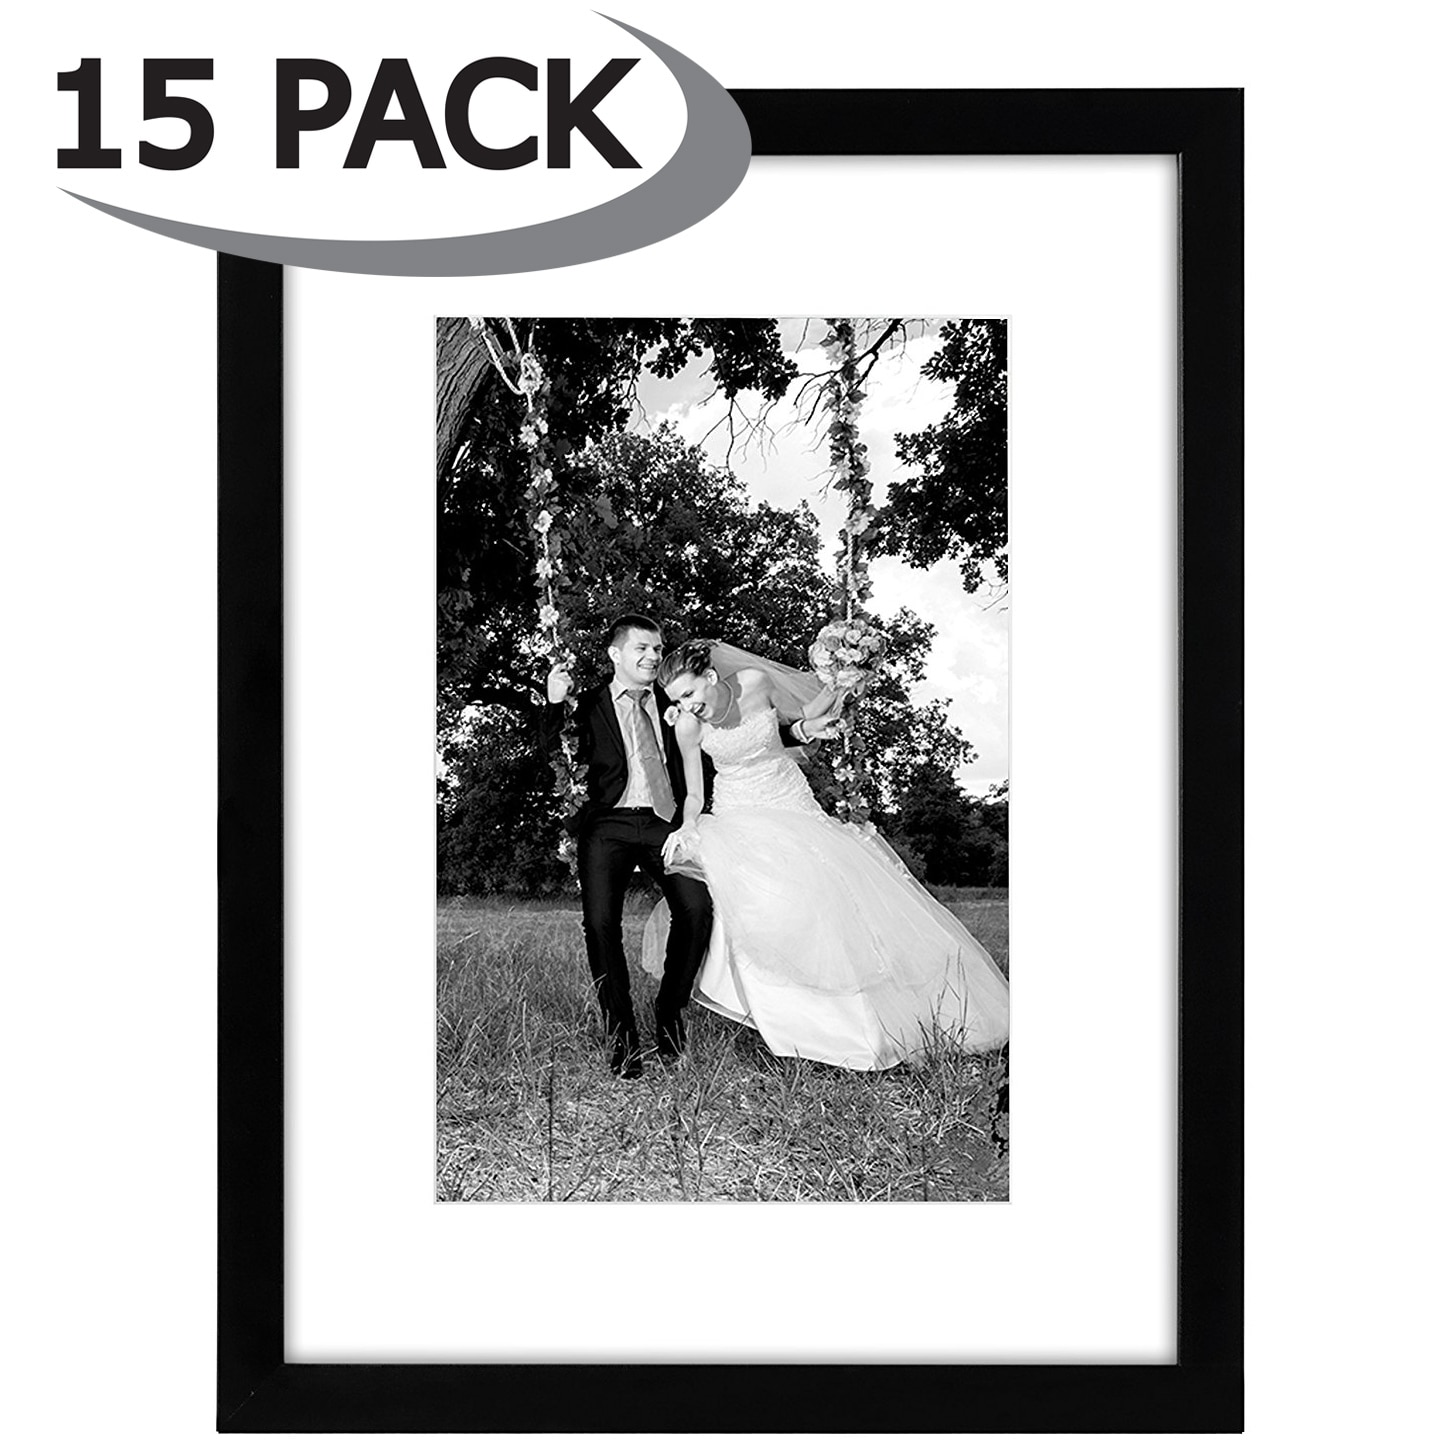 Shop 15 Pack - 12x16 Black Picture Frames - Made to Display Pictures ...